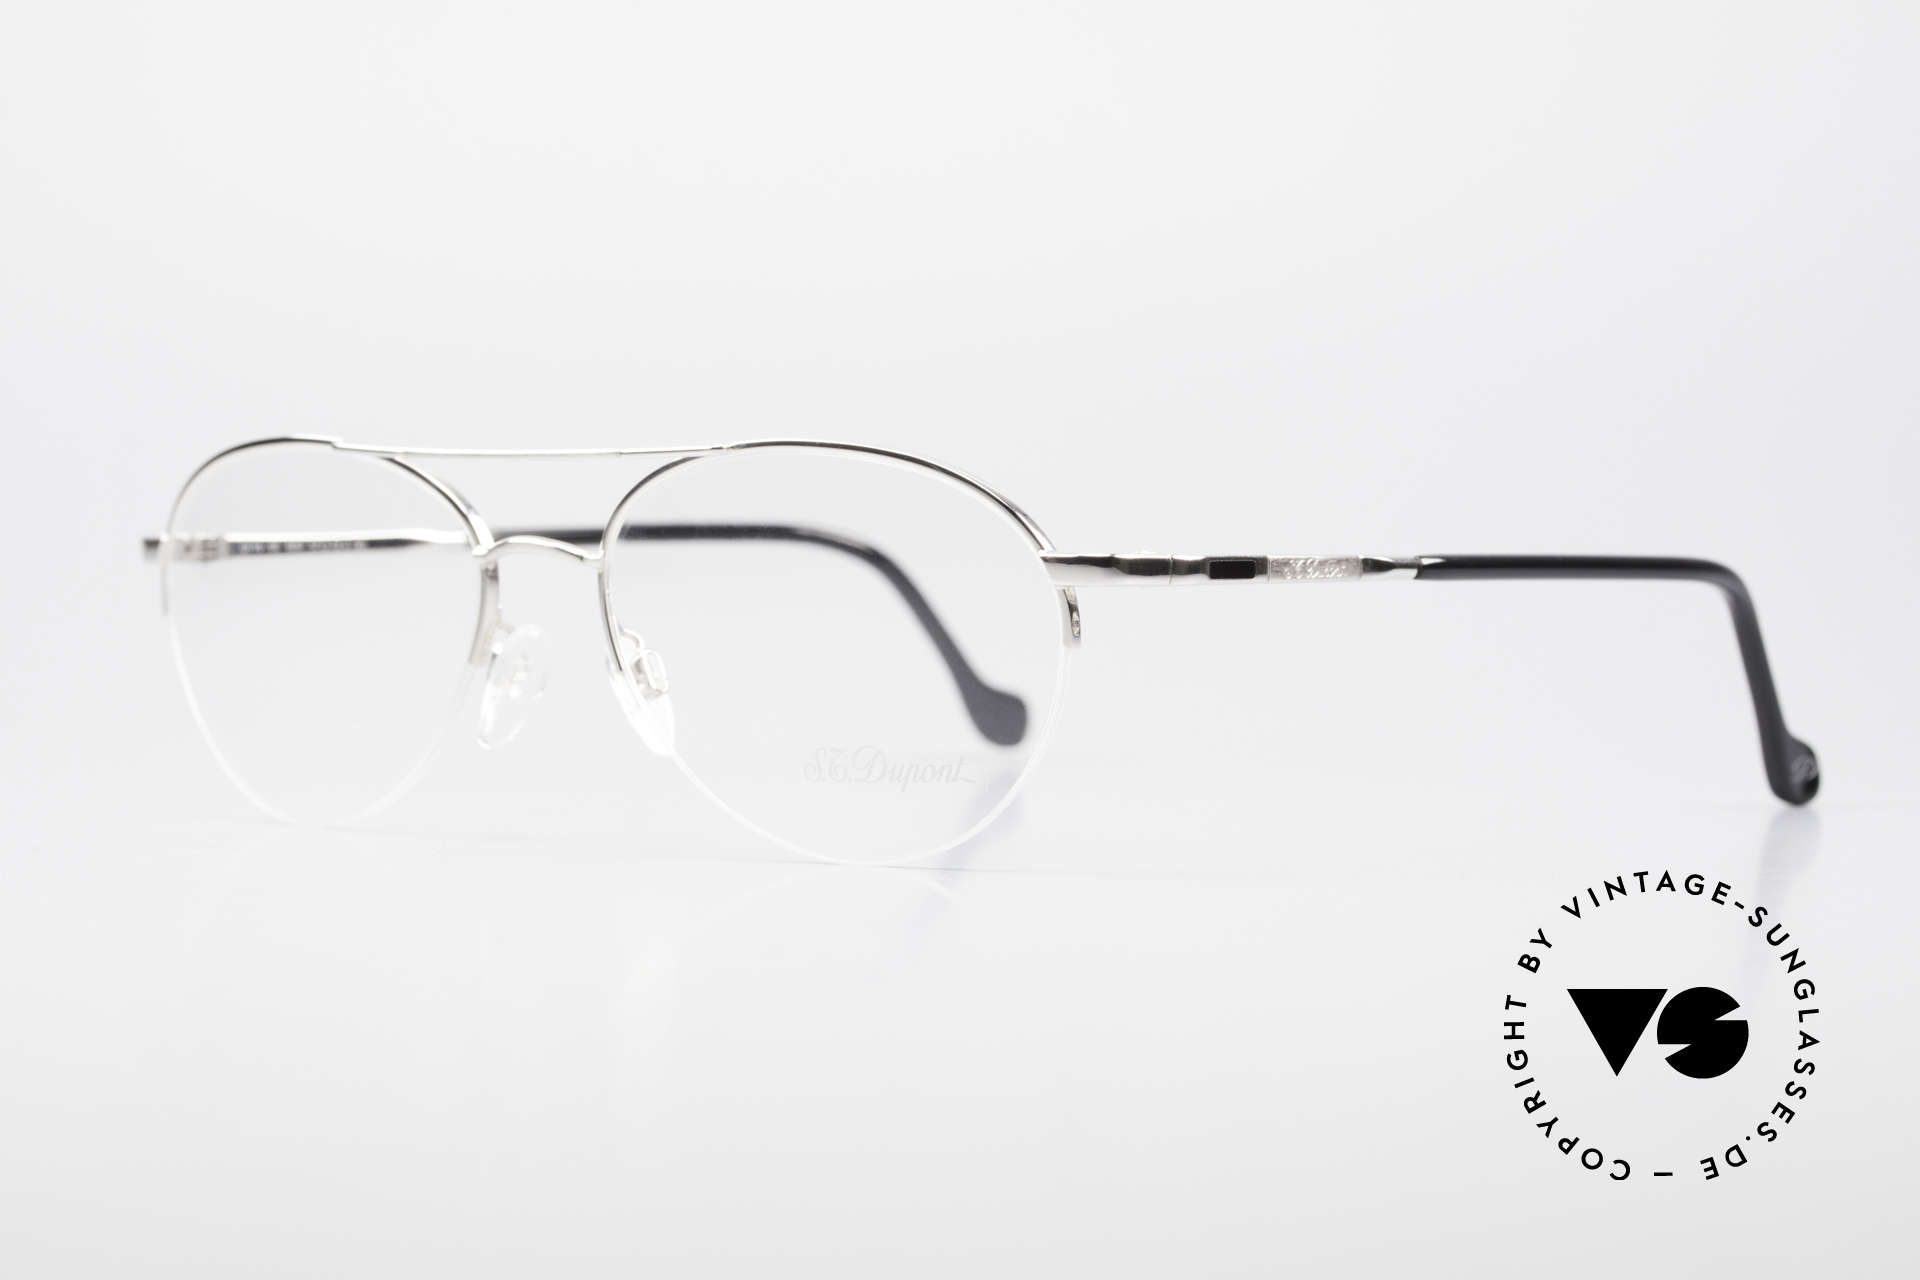 S.T. Dupont D116 Nylor Aviator Glasses 2000's, very noble & 1. class wearing comfort; large size 57/18, Made for Men